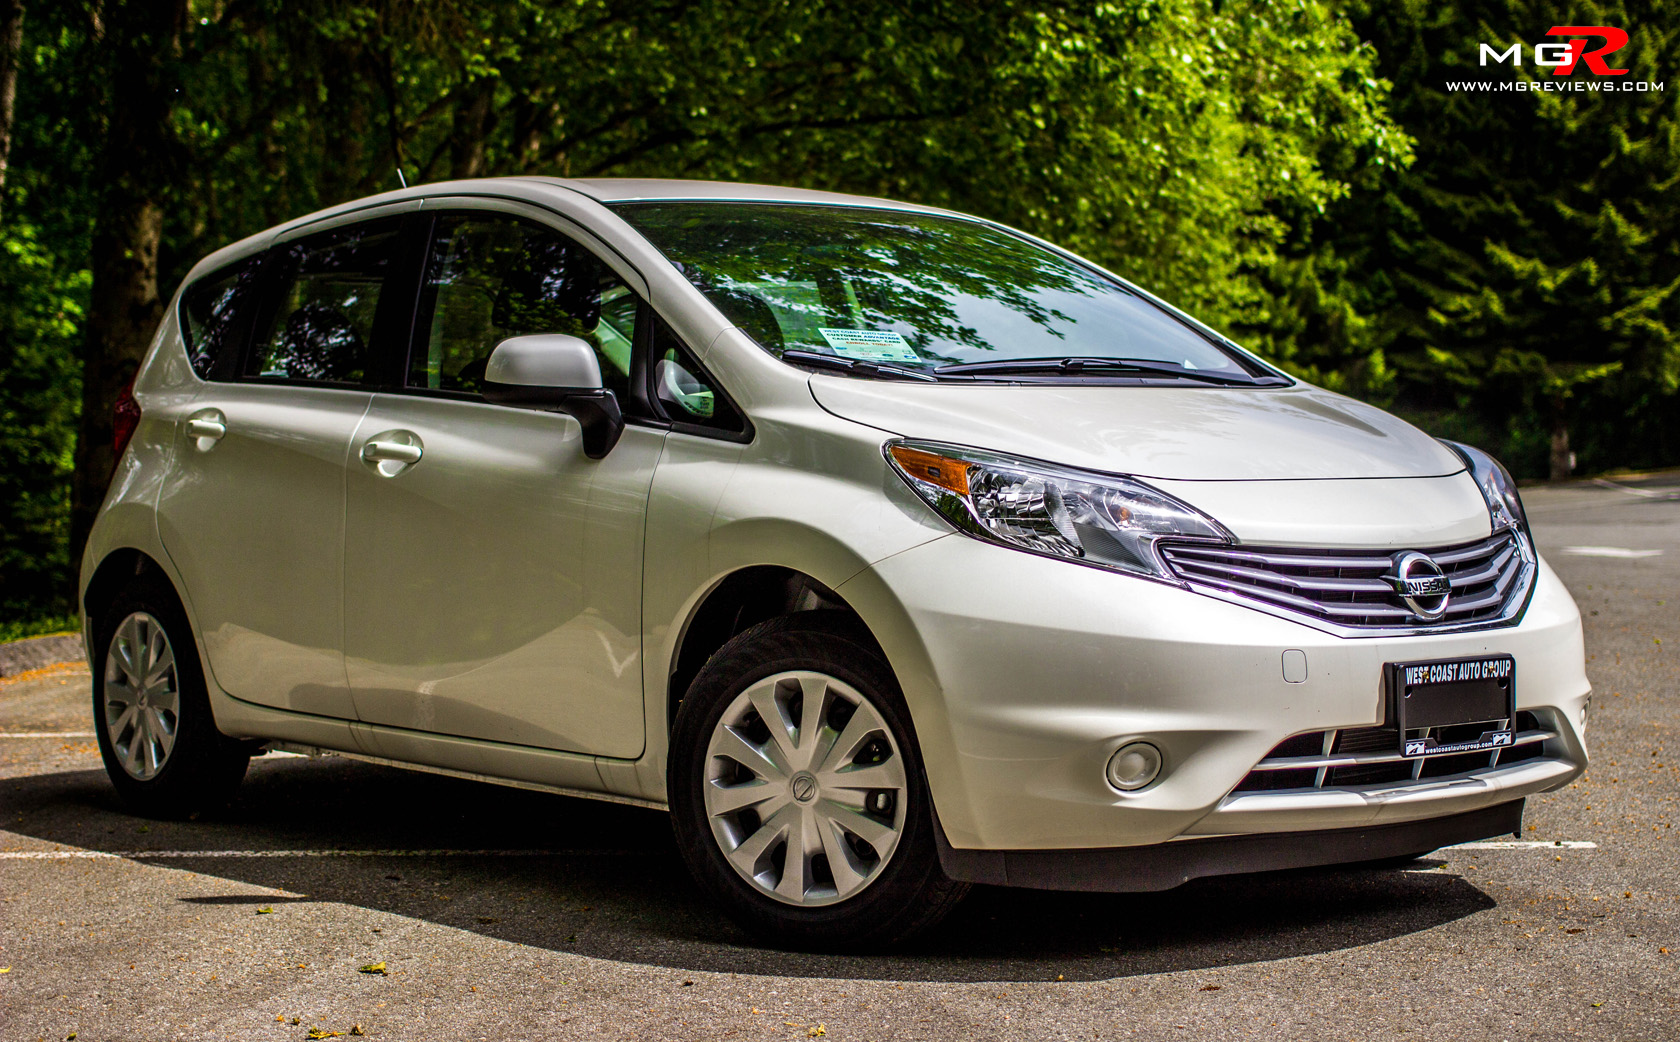 Review 2014 Nissan Versa Note M G Reviews